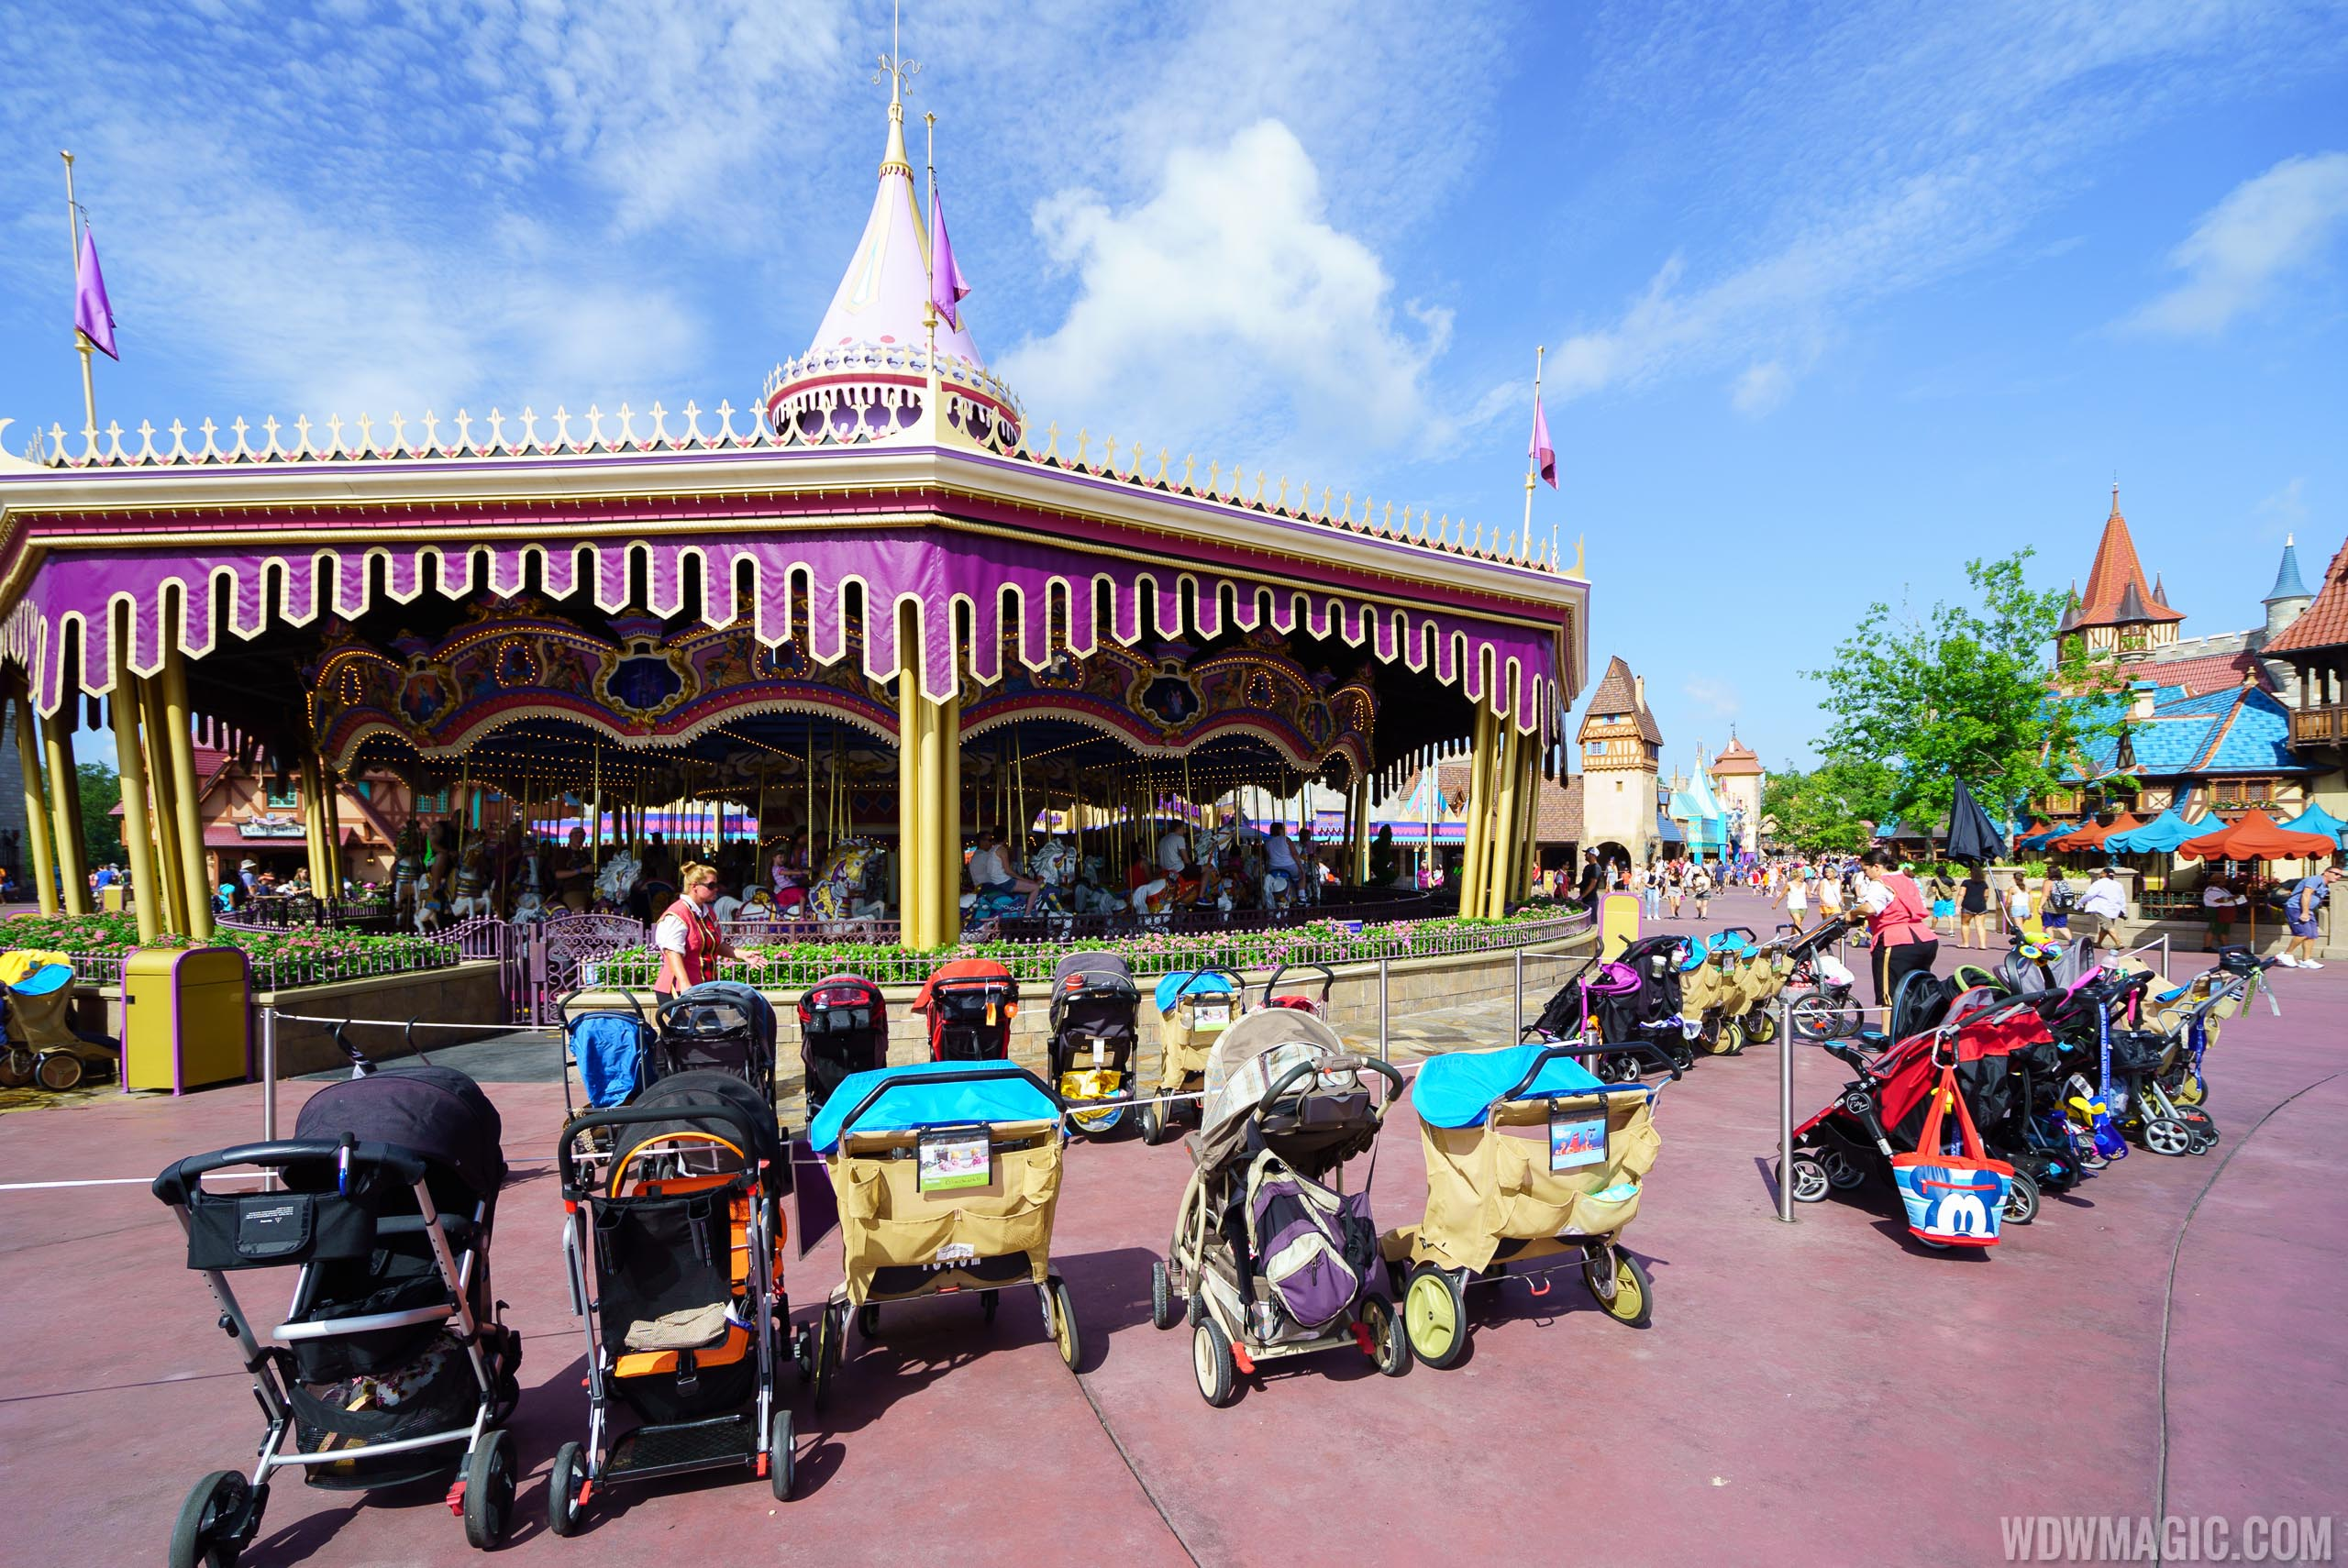 Stroller parking in Fantasyland at the Magic Kingdom